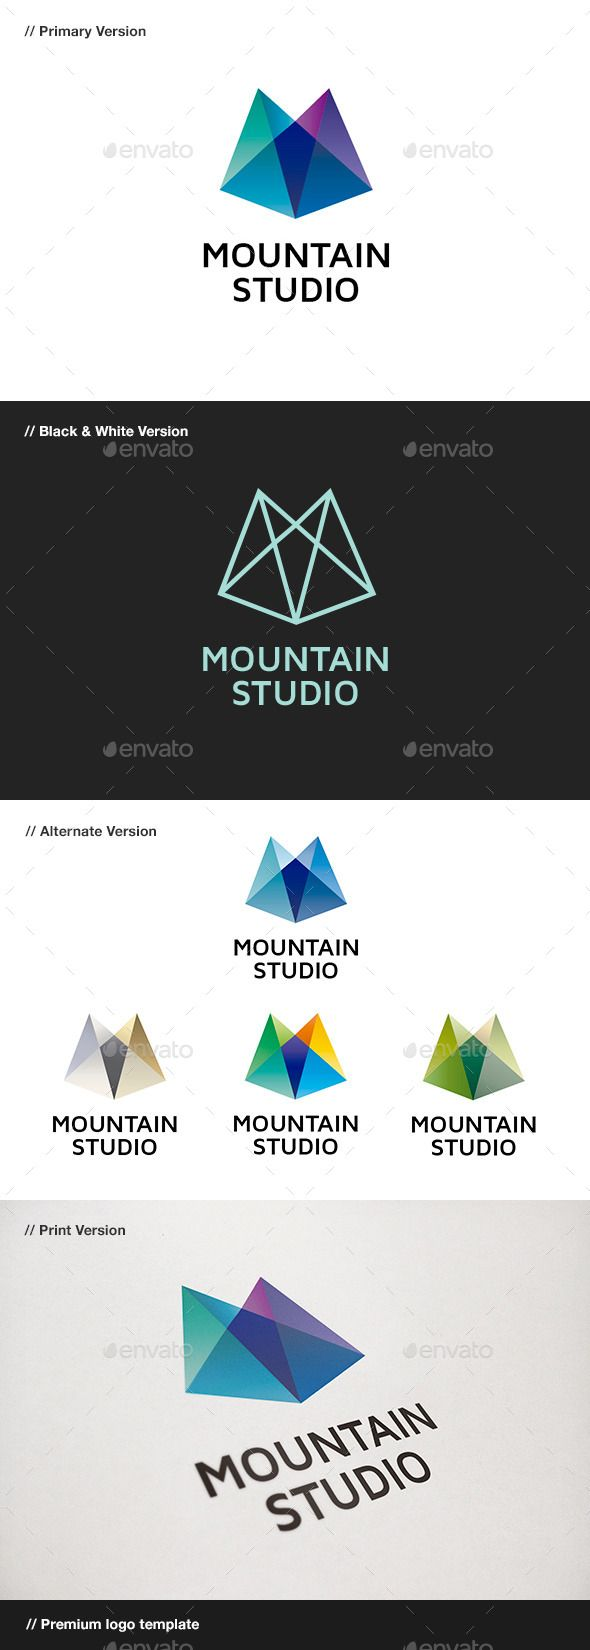 25 best ideas about mountain logos on pinterest logo for Easy architectural software